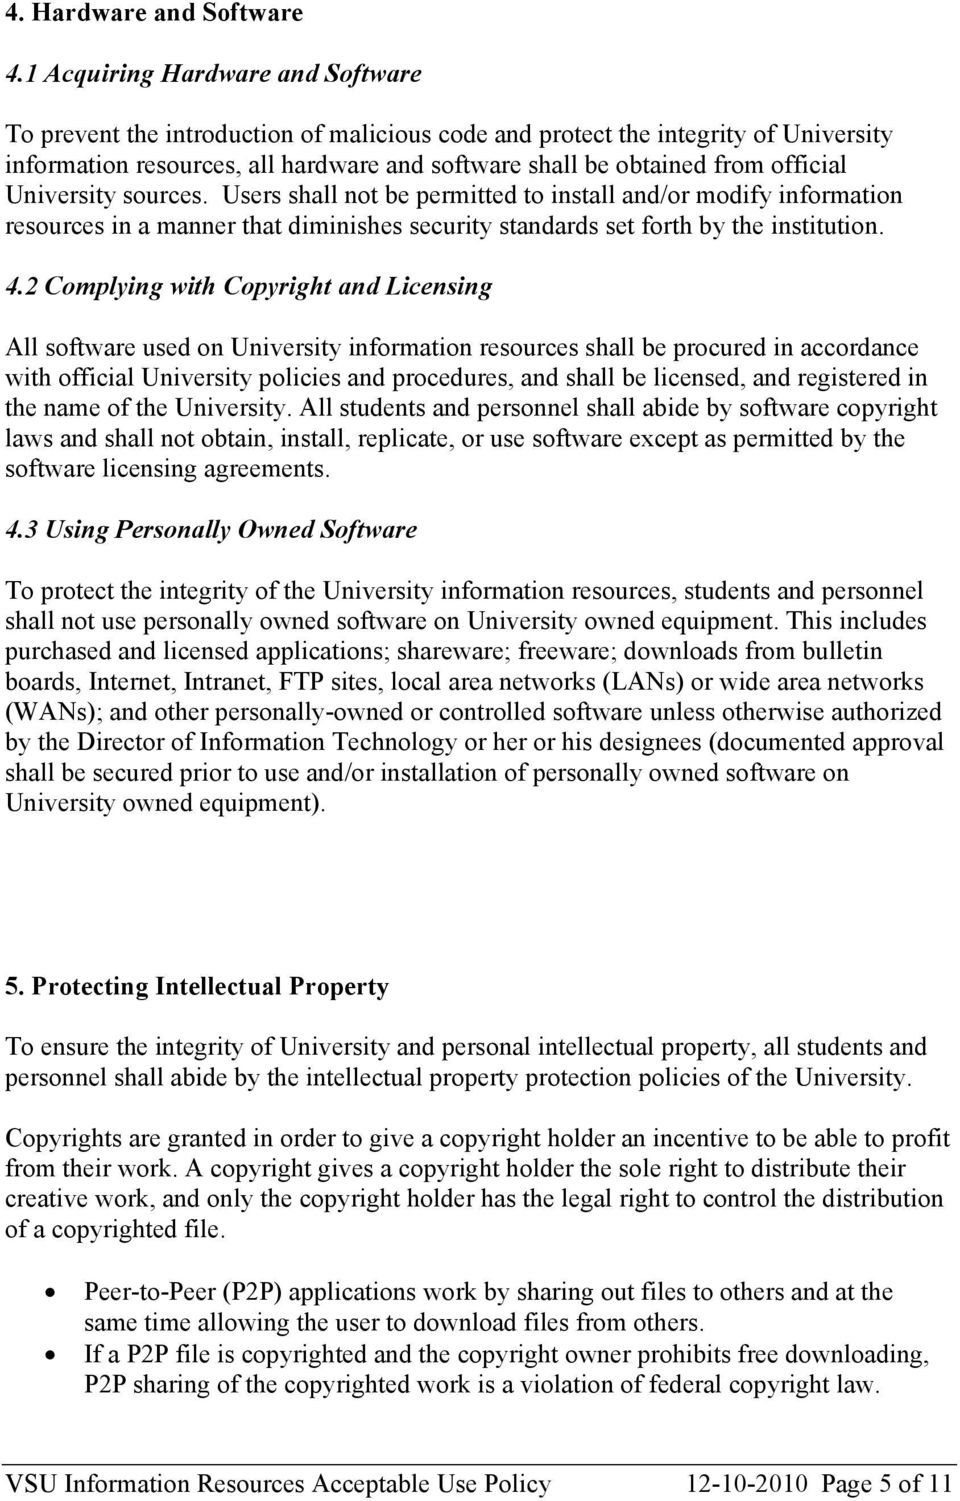 official University sources. Users shall not be permitted to install and/or modify information resources in a manner that diminishes security standards set forth by the institution. 4.